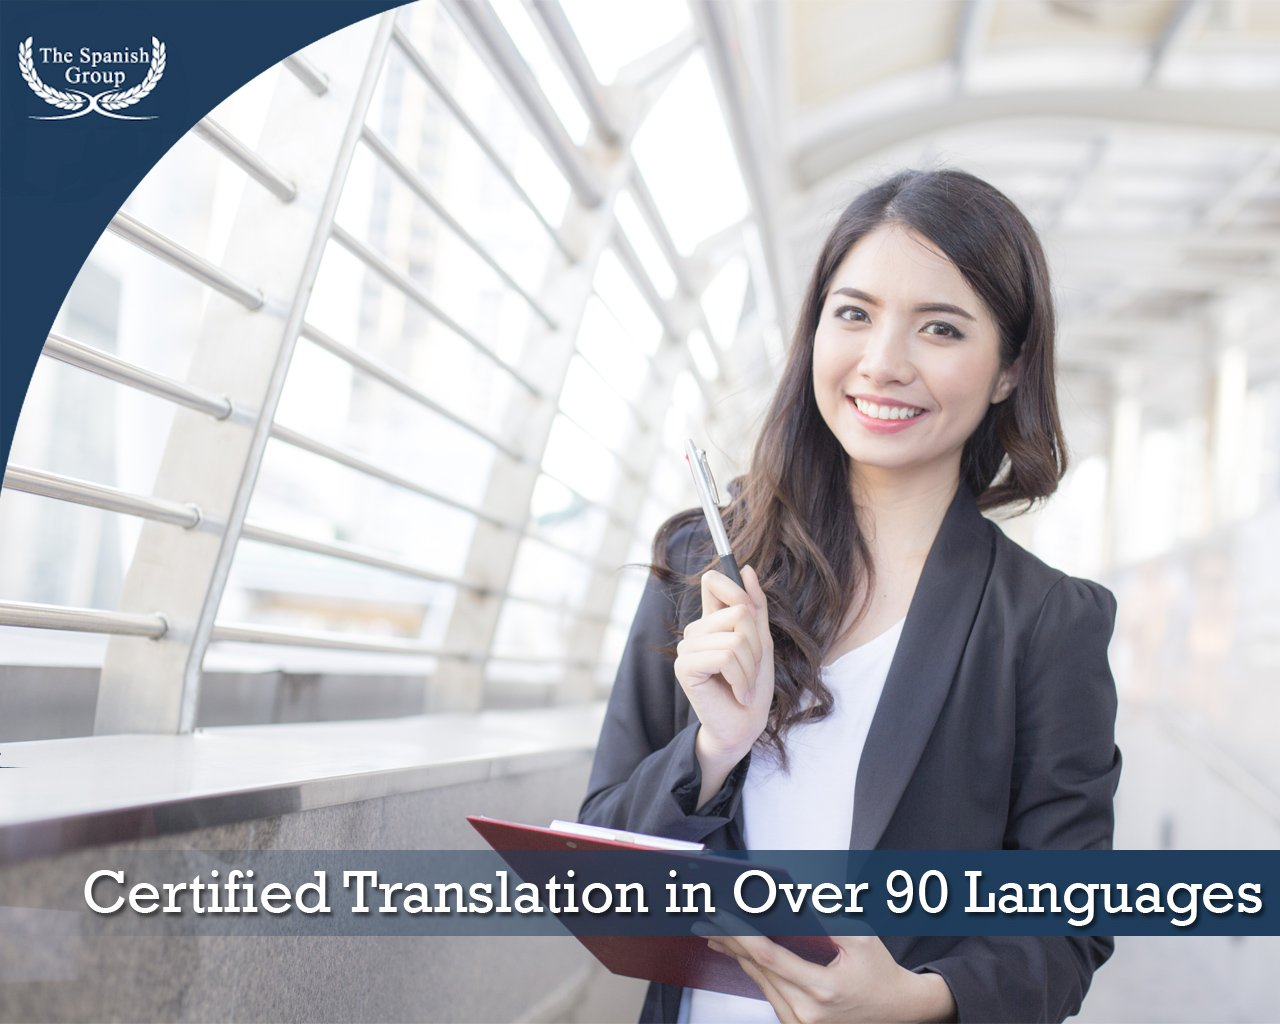 Certified Translation in Over 90 Languages